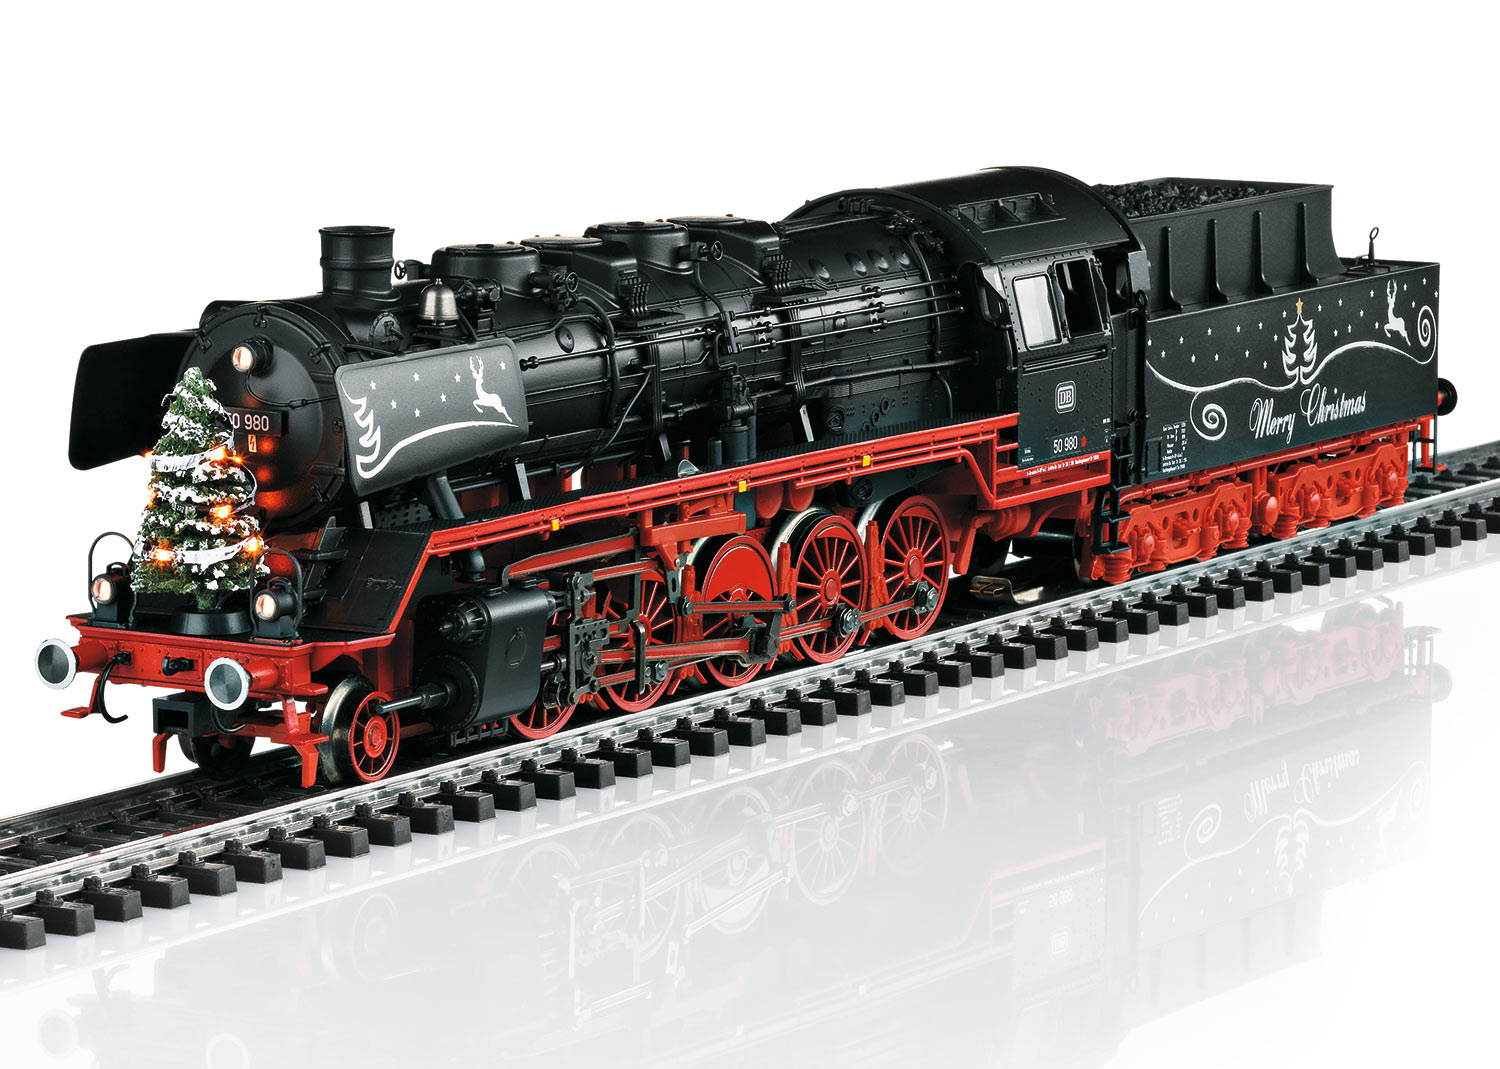 Christmas Steam Locomotive with a Tender